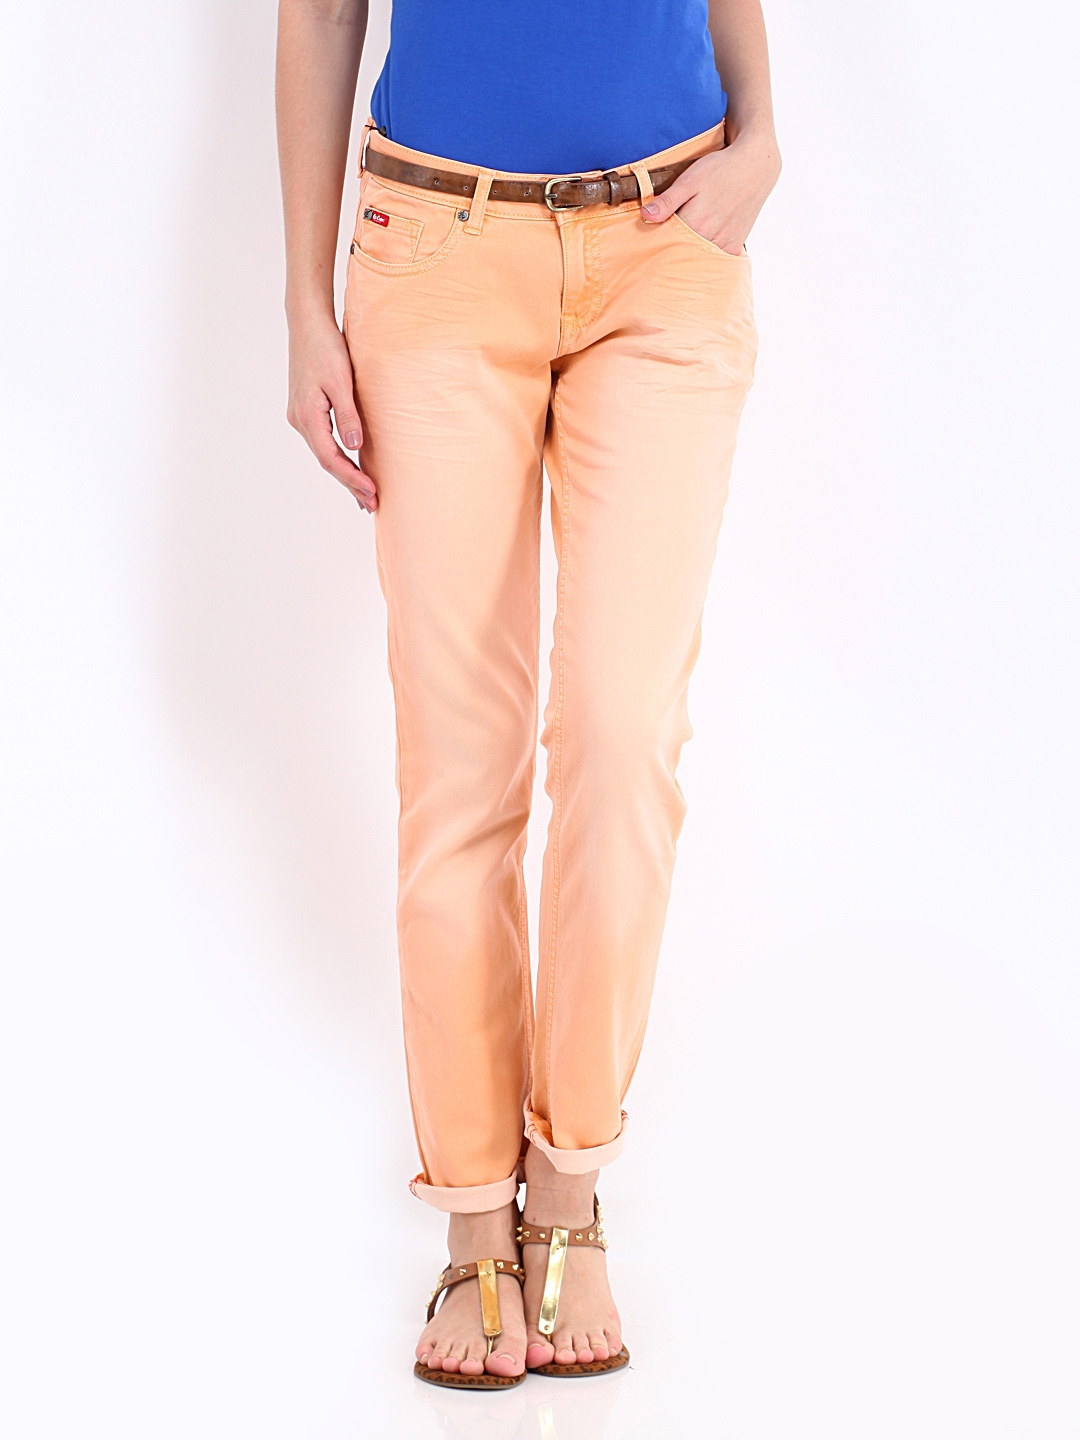 lee cooper jeans for women - photo #45